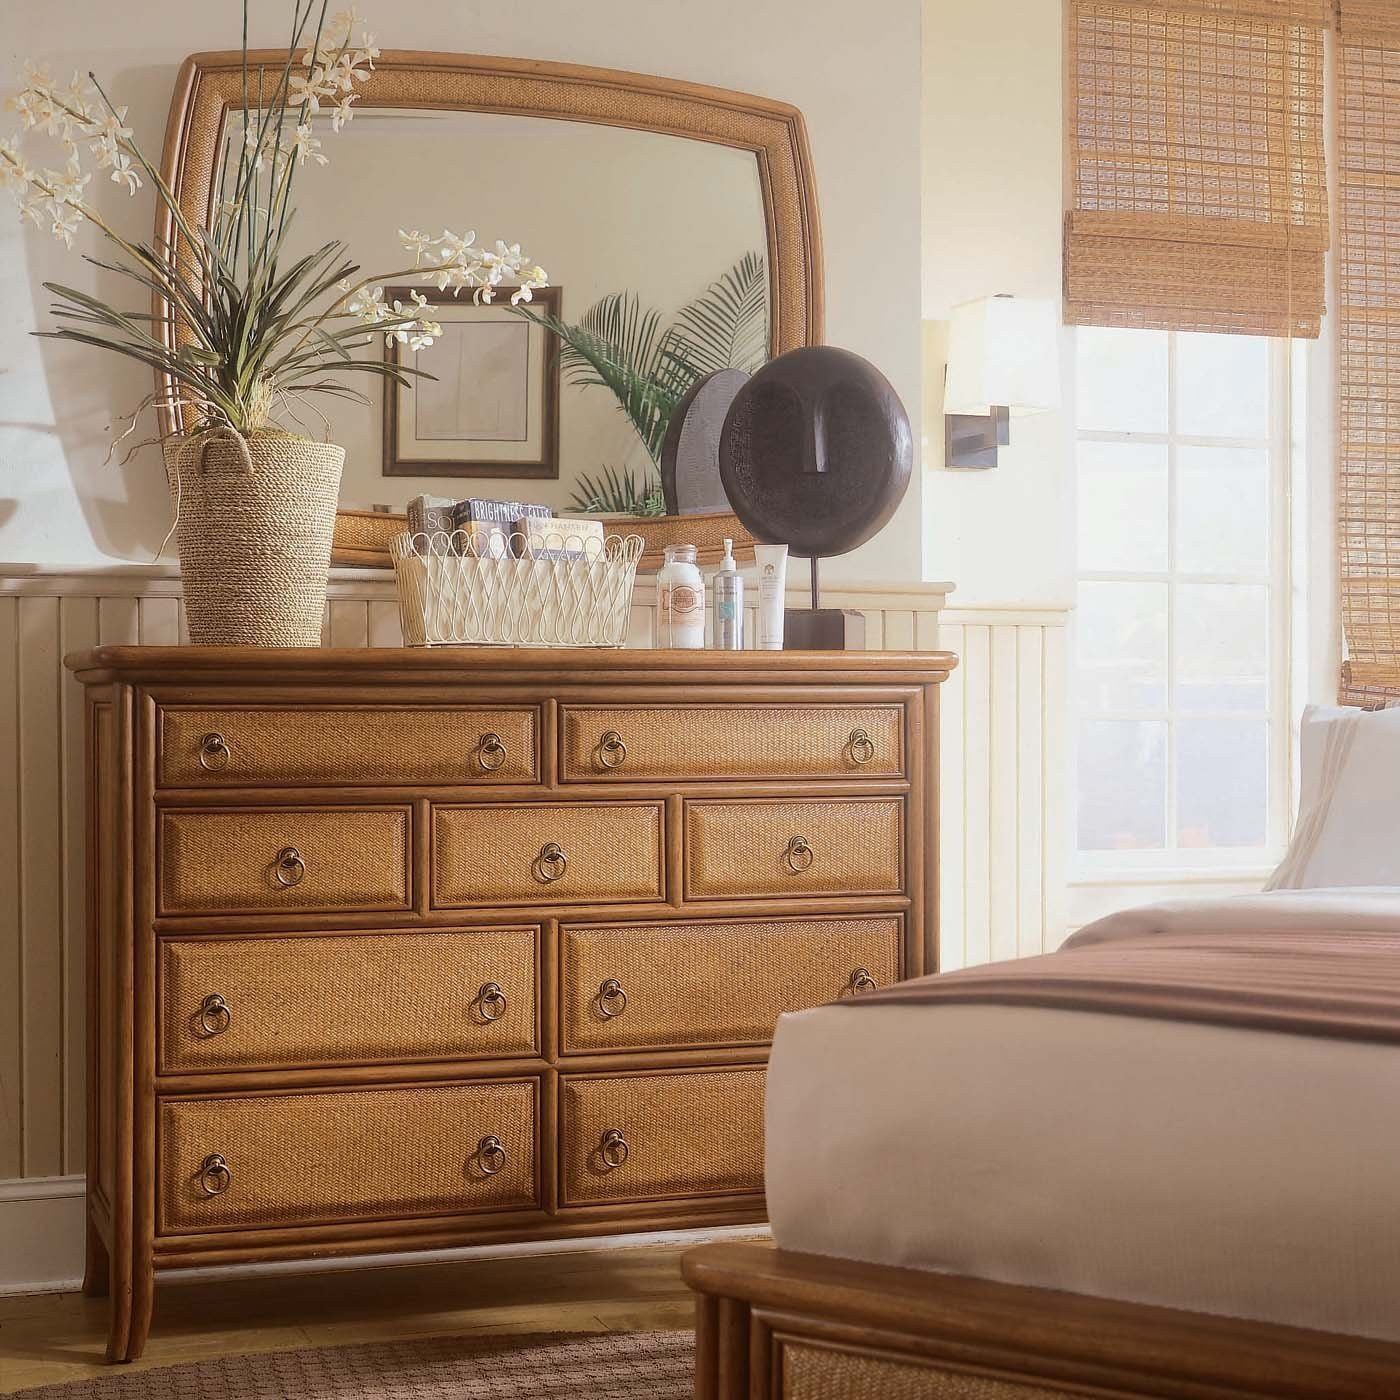 #452918 American Drew Antigua Tall Dresser And Mirror Set with 1400x1400 px of Brand New Tall Dresser With Mirror 14001400 pic @ avoidforclosure.info